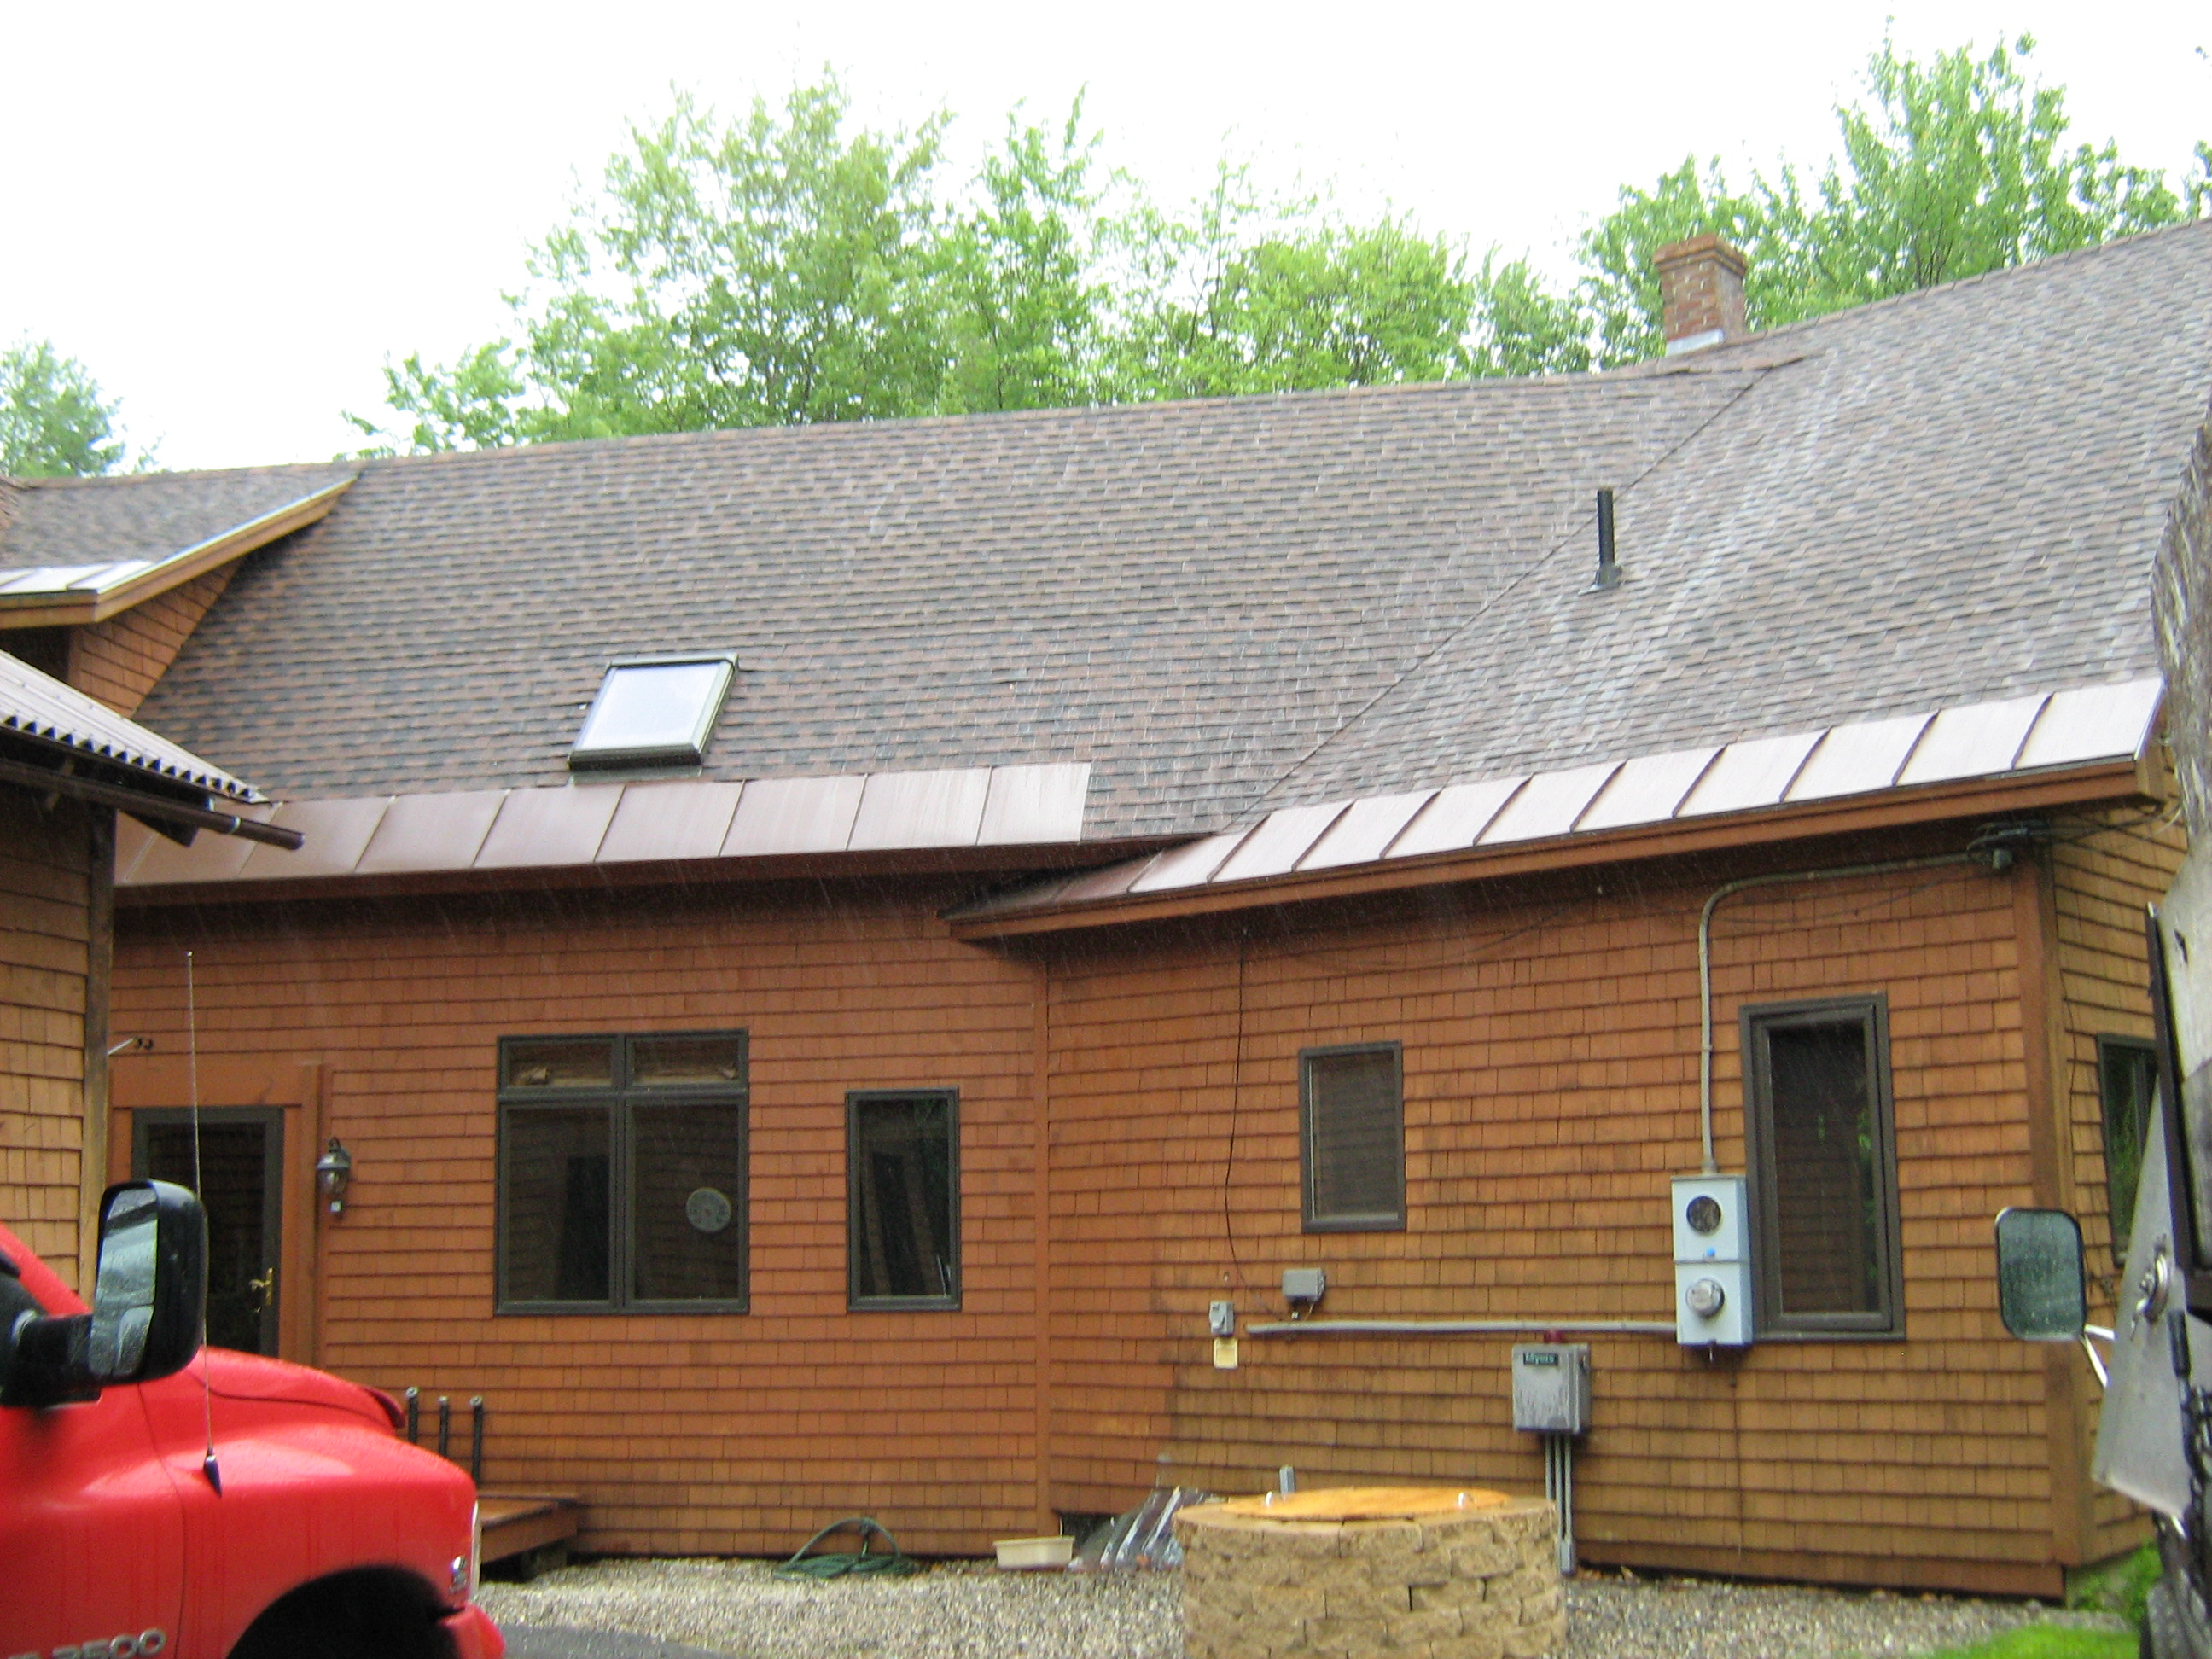 Roofing: